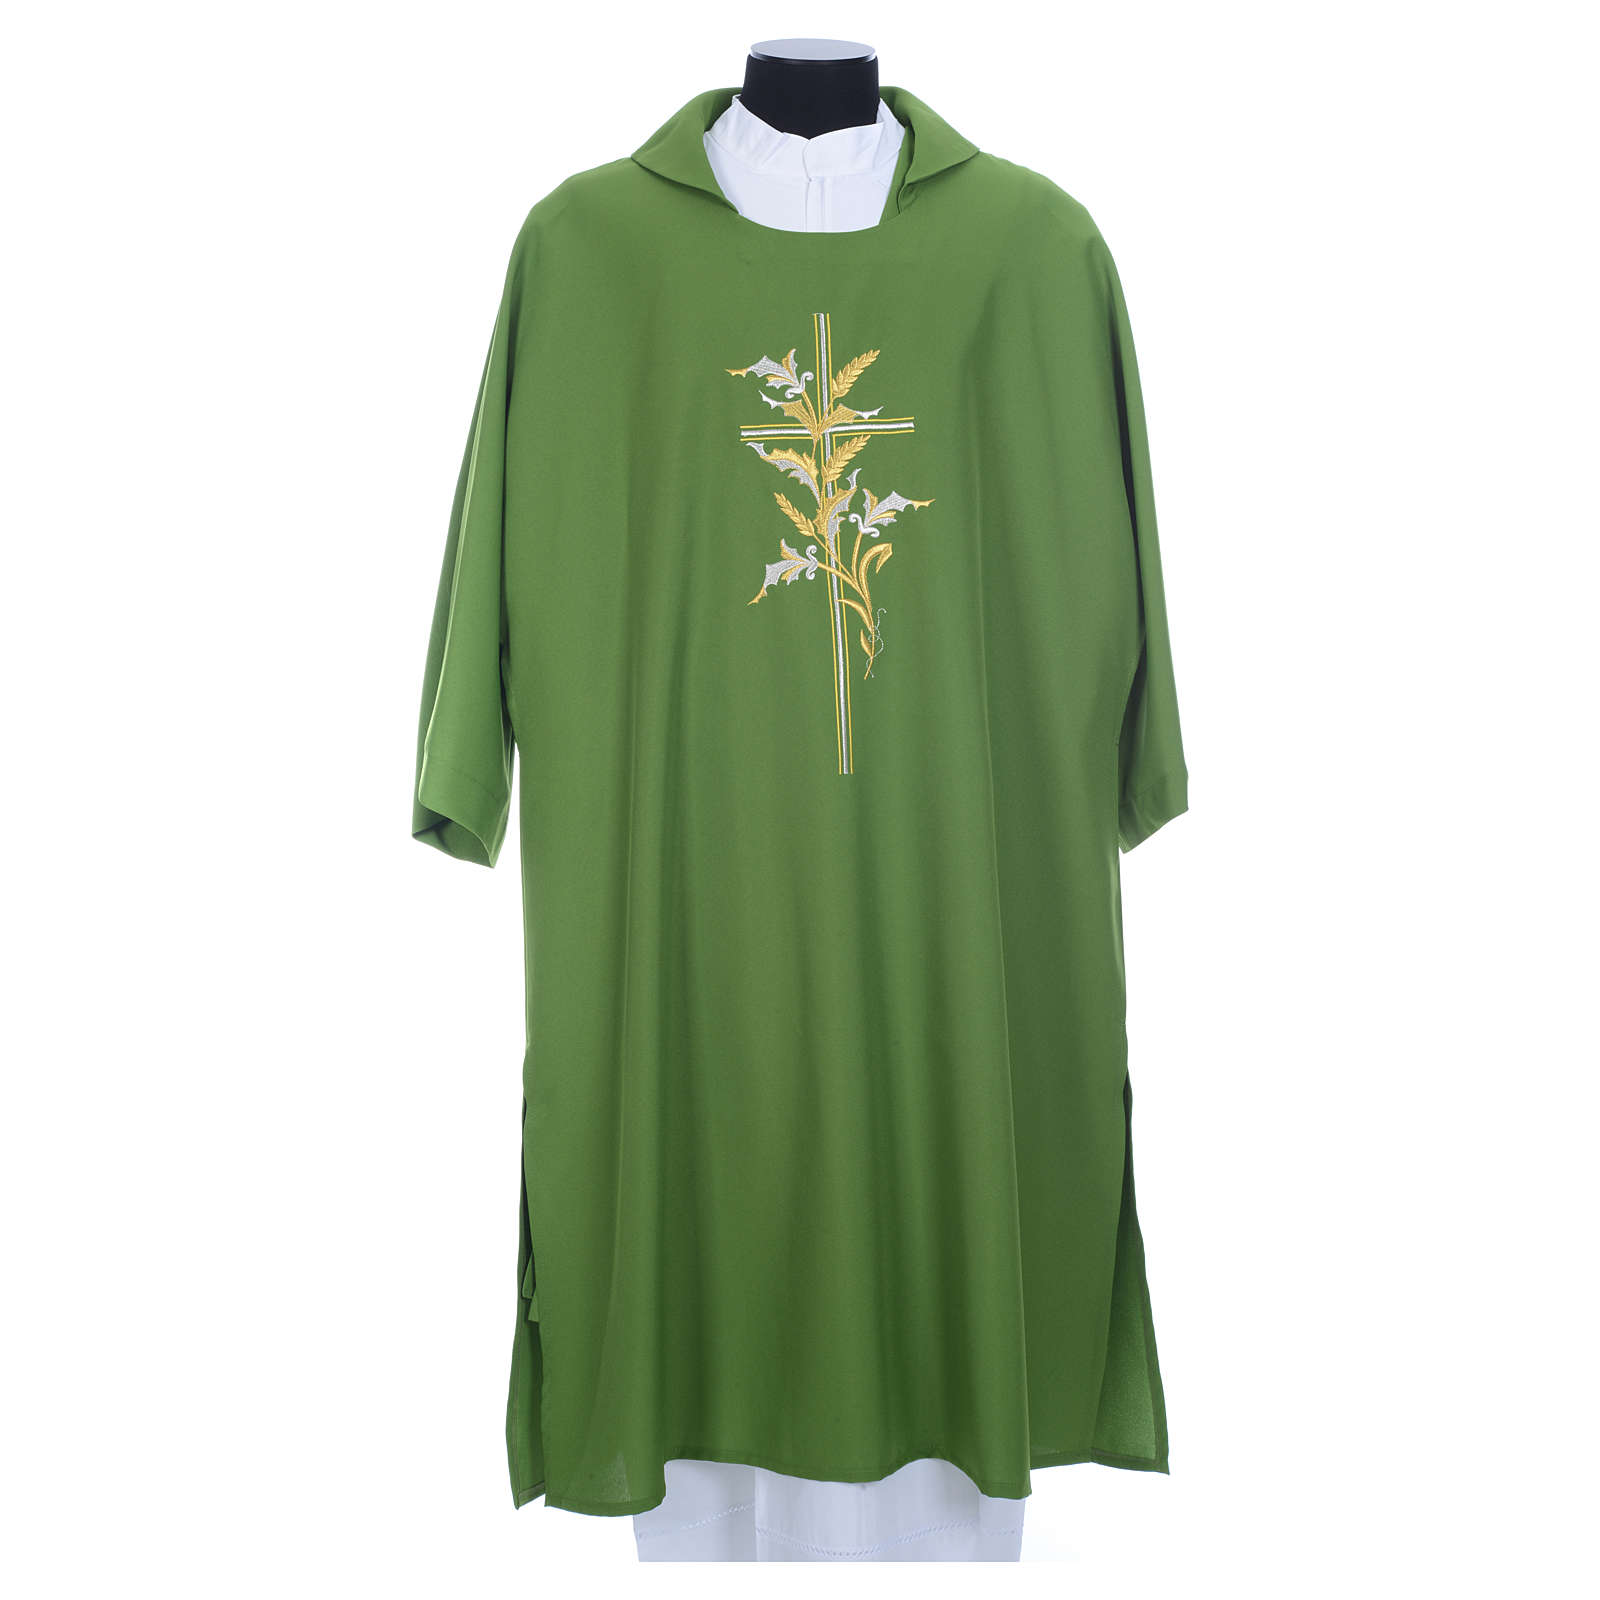 Dalmatic with embroidered ears of wheat and cross 100% polyester 4